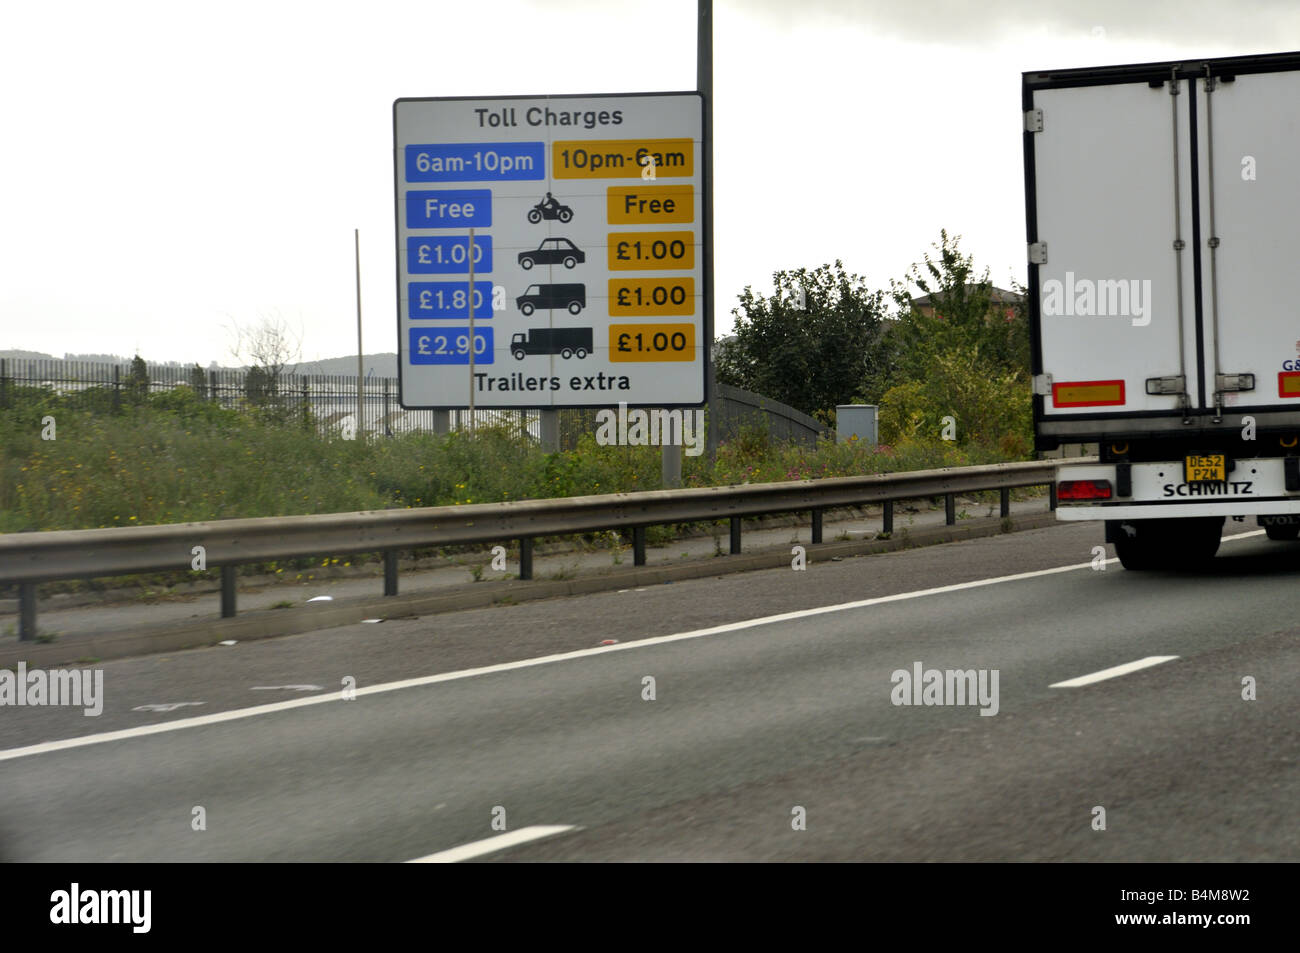 Dartford crossing toll charges UK Stock Photo